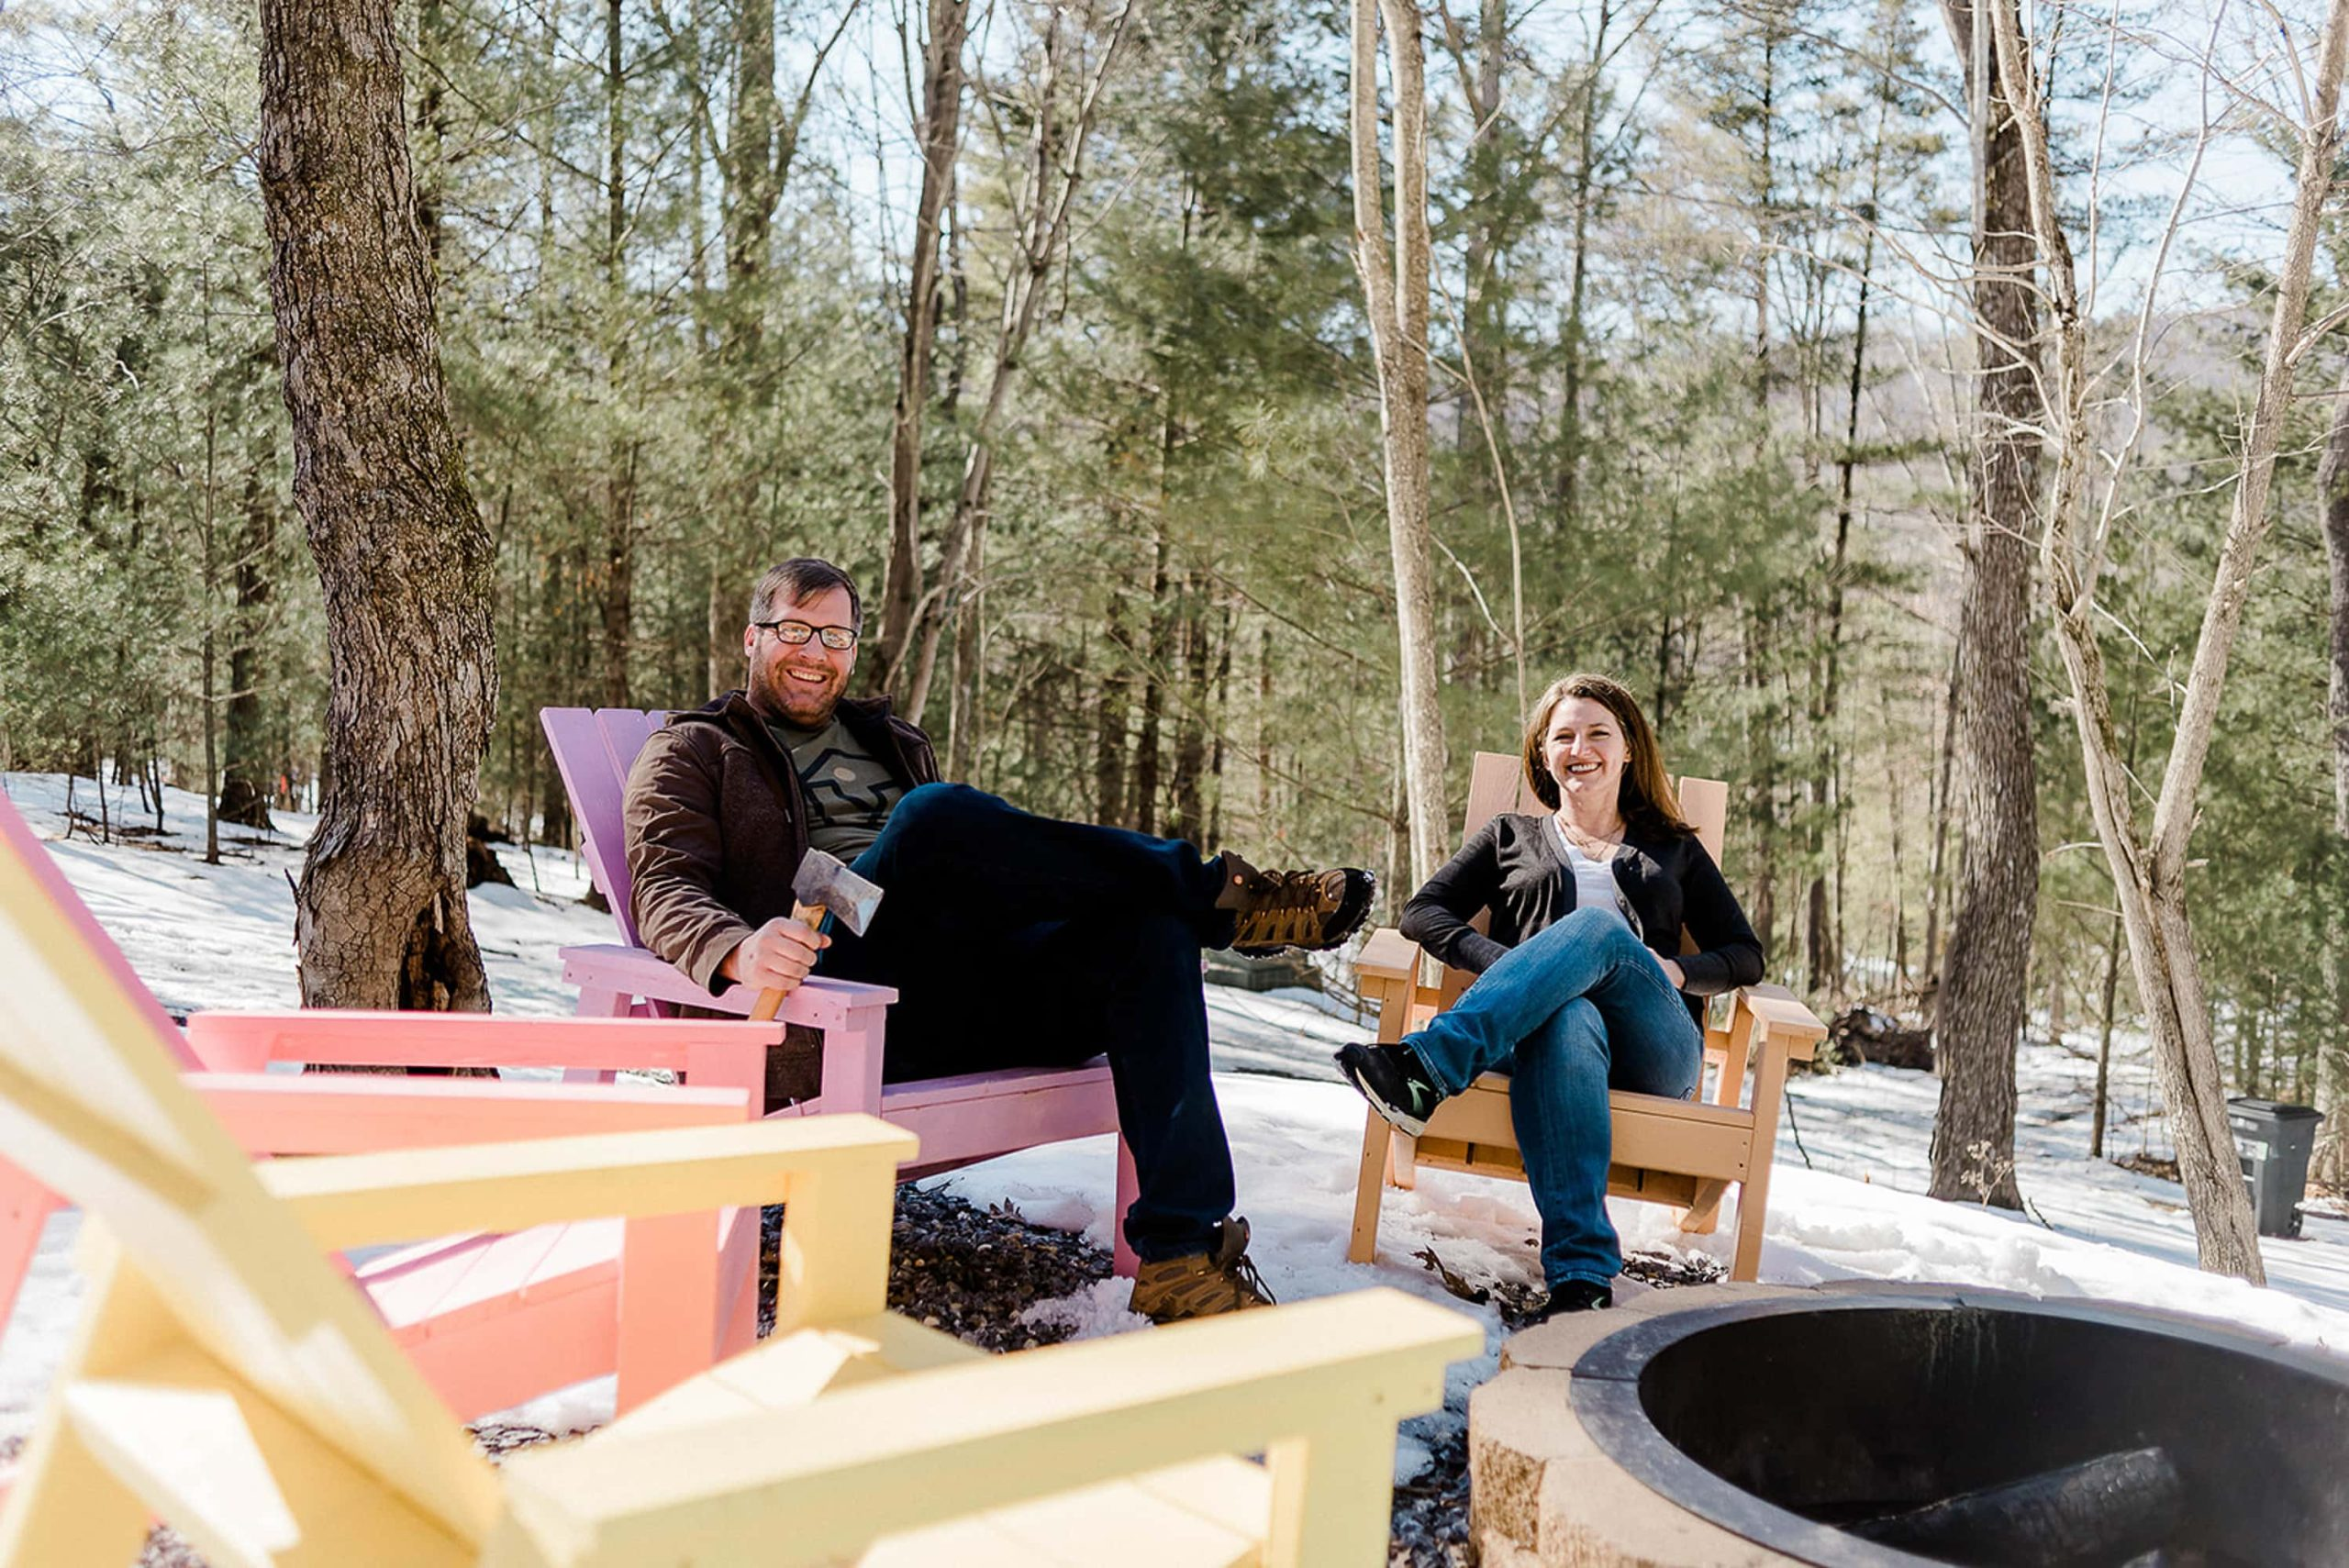 John and Vanessa at their DIY cabin in West Virginia